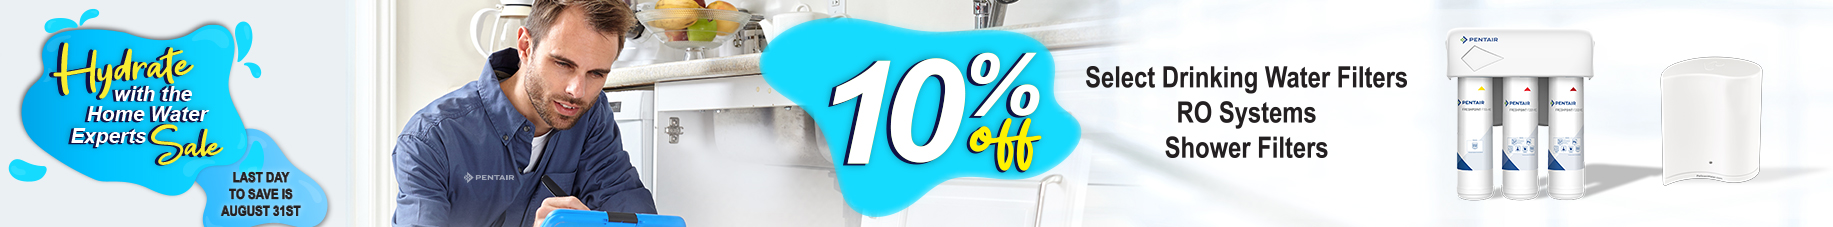 Hydrate with the Home Water Experts Sale - save 10% - ends August 31st